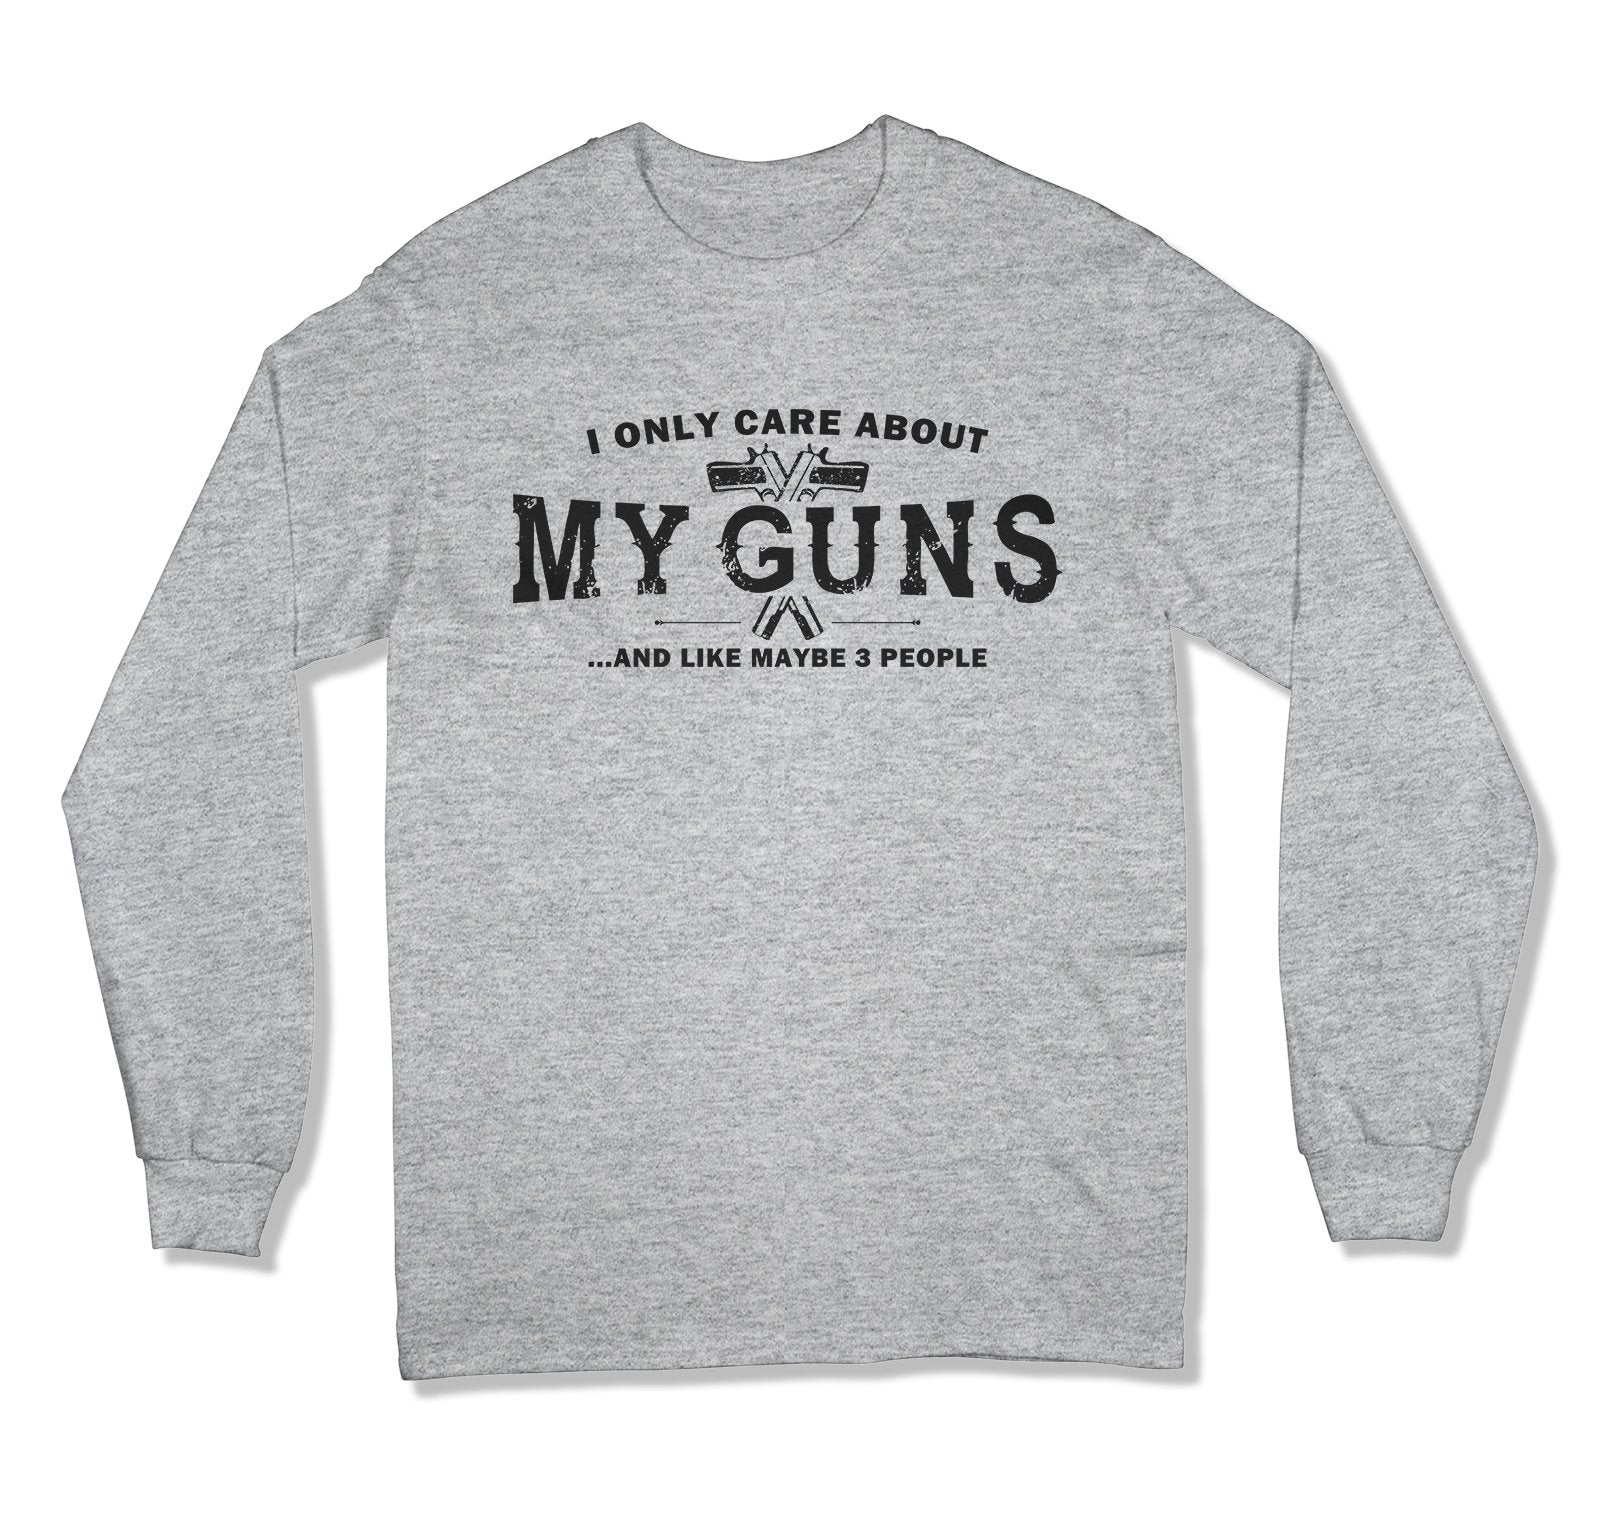 I Only Care About My Guns T-Shirt - MD-317